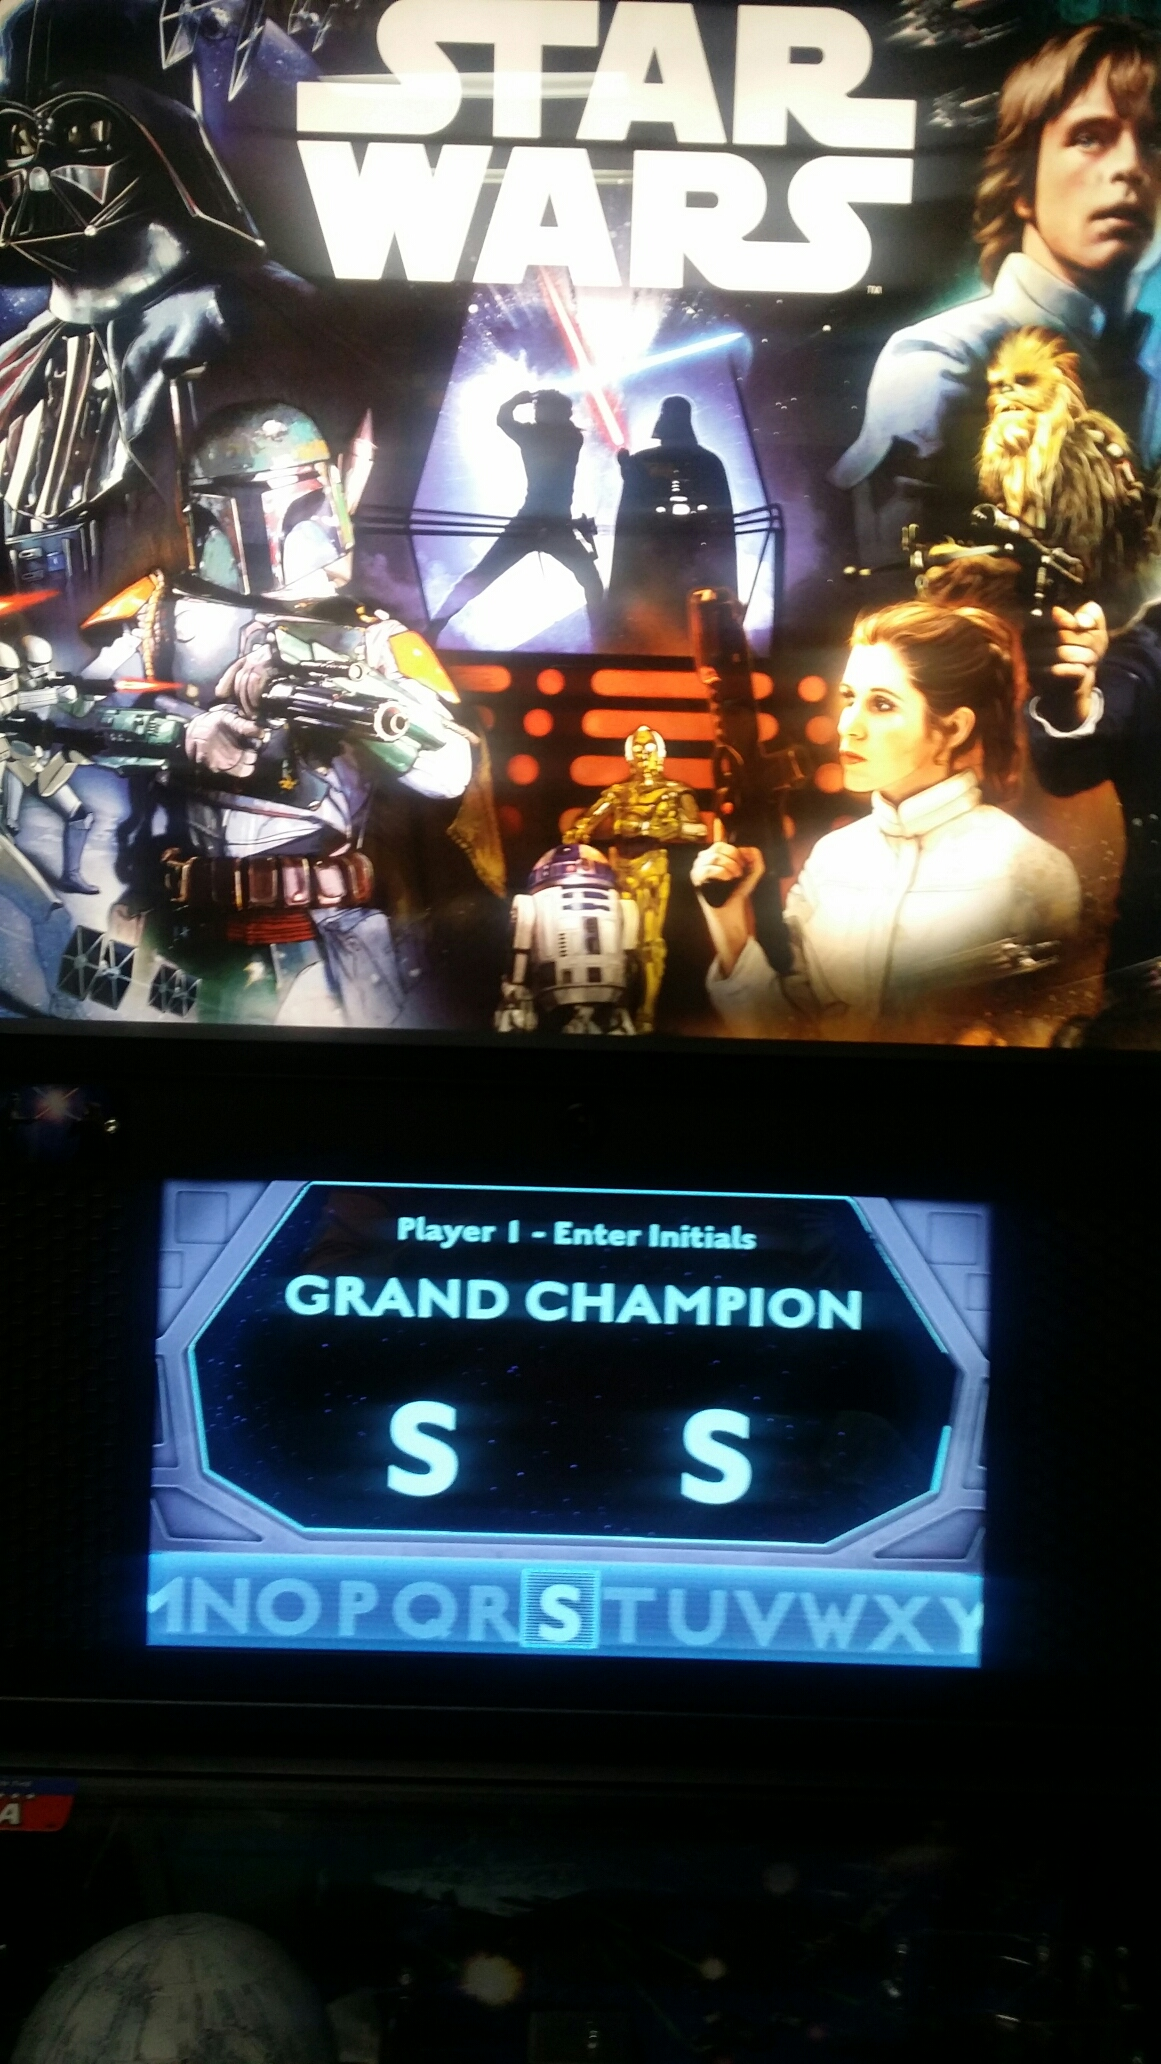 Star Wars: Stern 2017 - Tie Fighter Champion 102 points